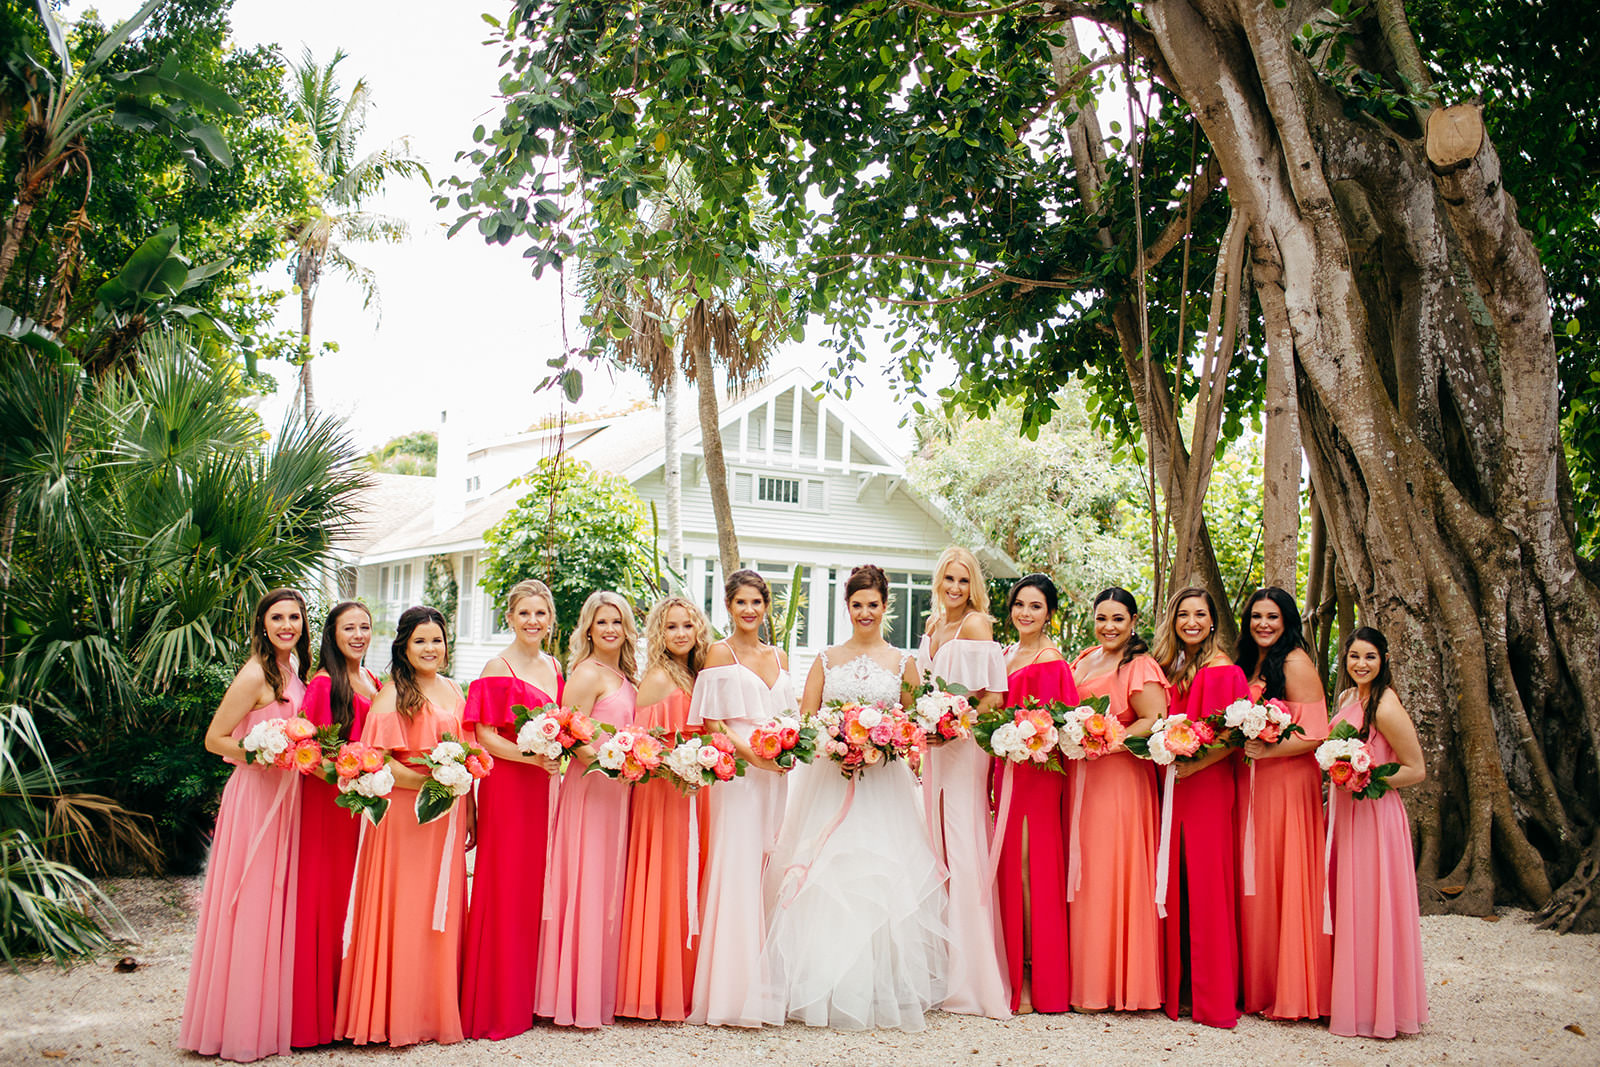 Tropical Vibrant Bride and Bridesmaids in Pink and Coral Dresses